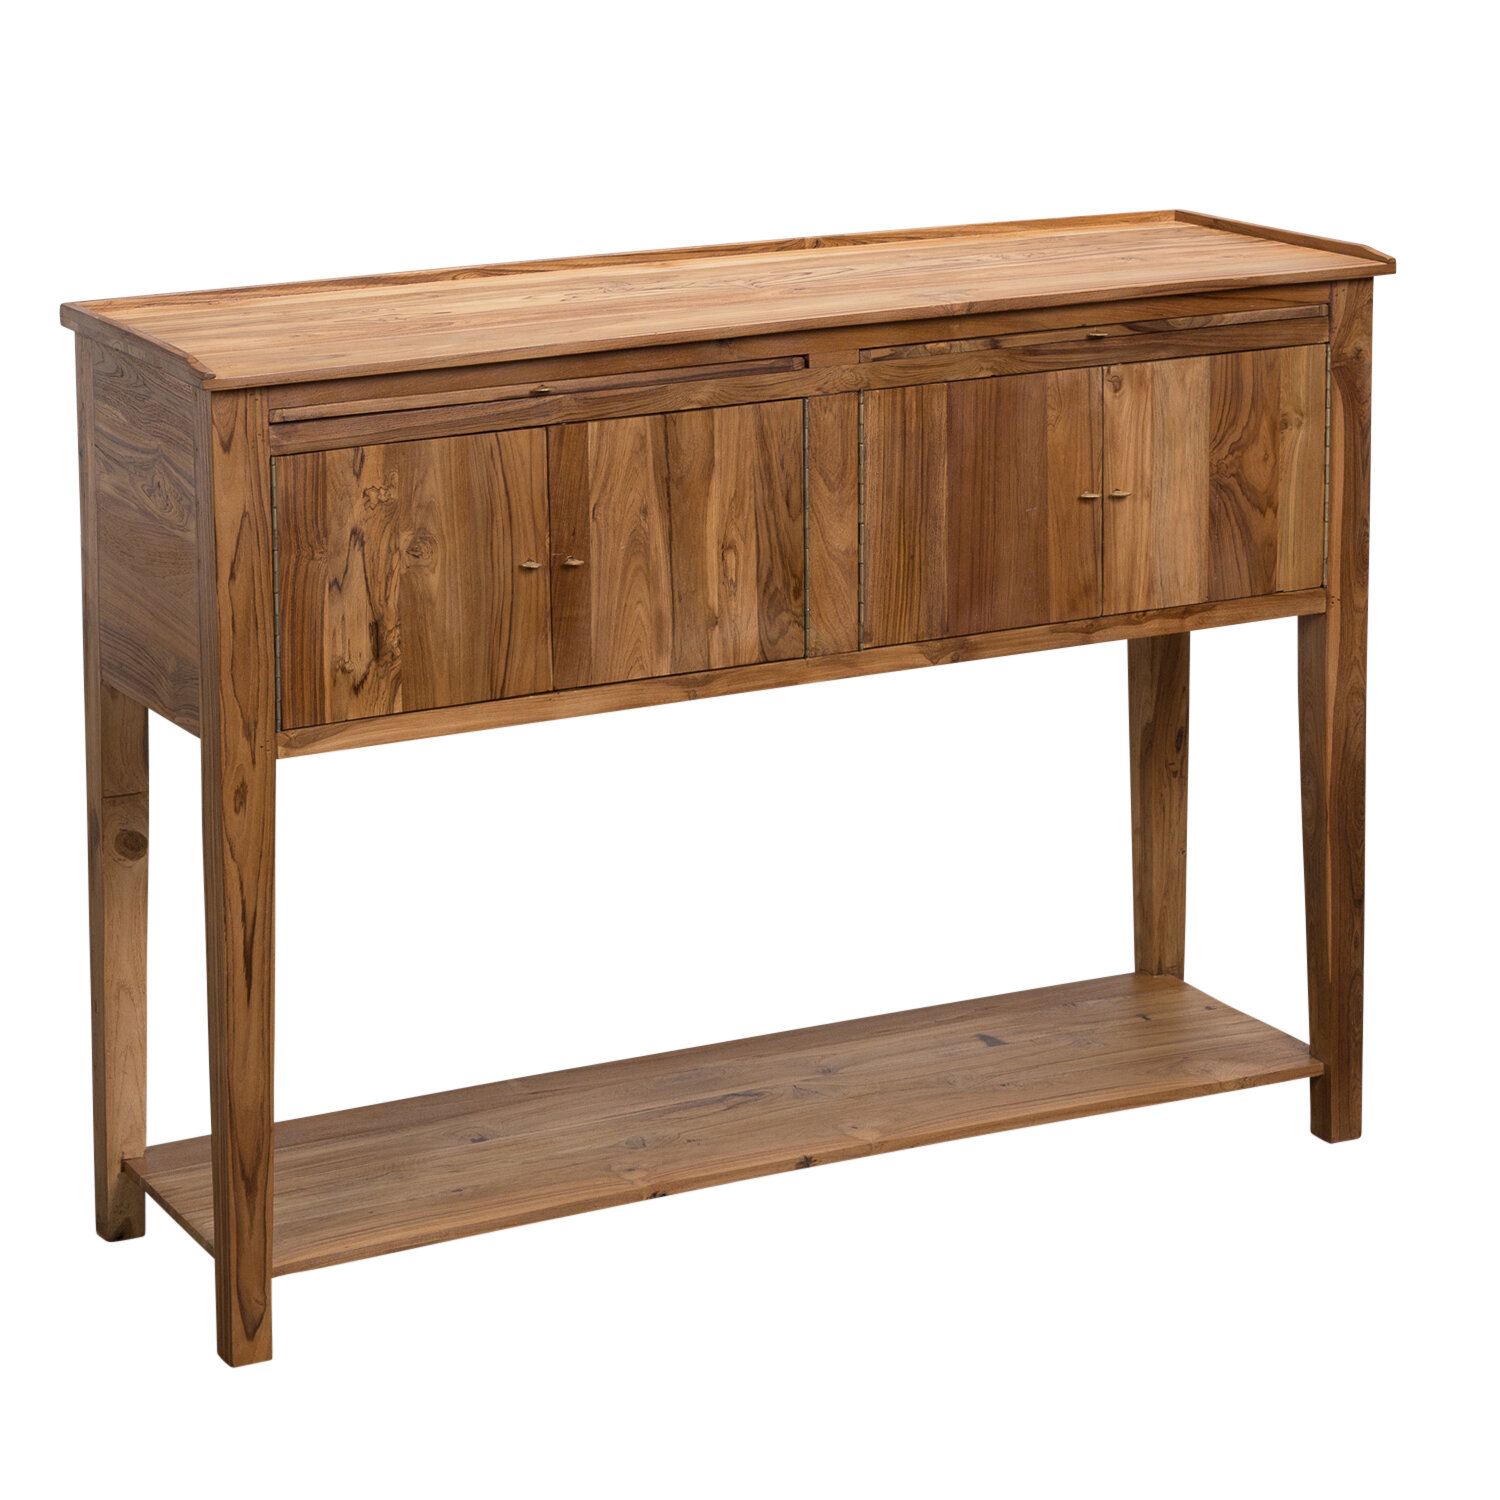 High Quality Foundry Select Angus Reclaimed Teak Buffet Table | Wayfair